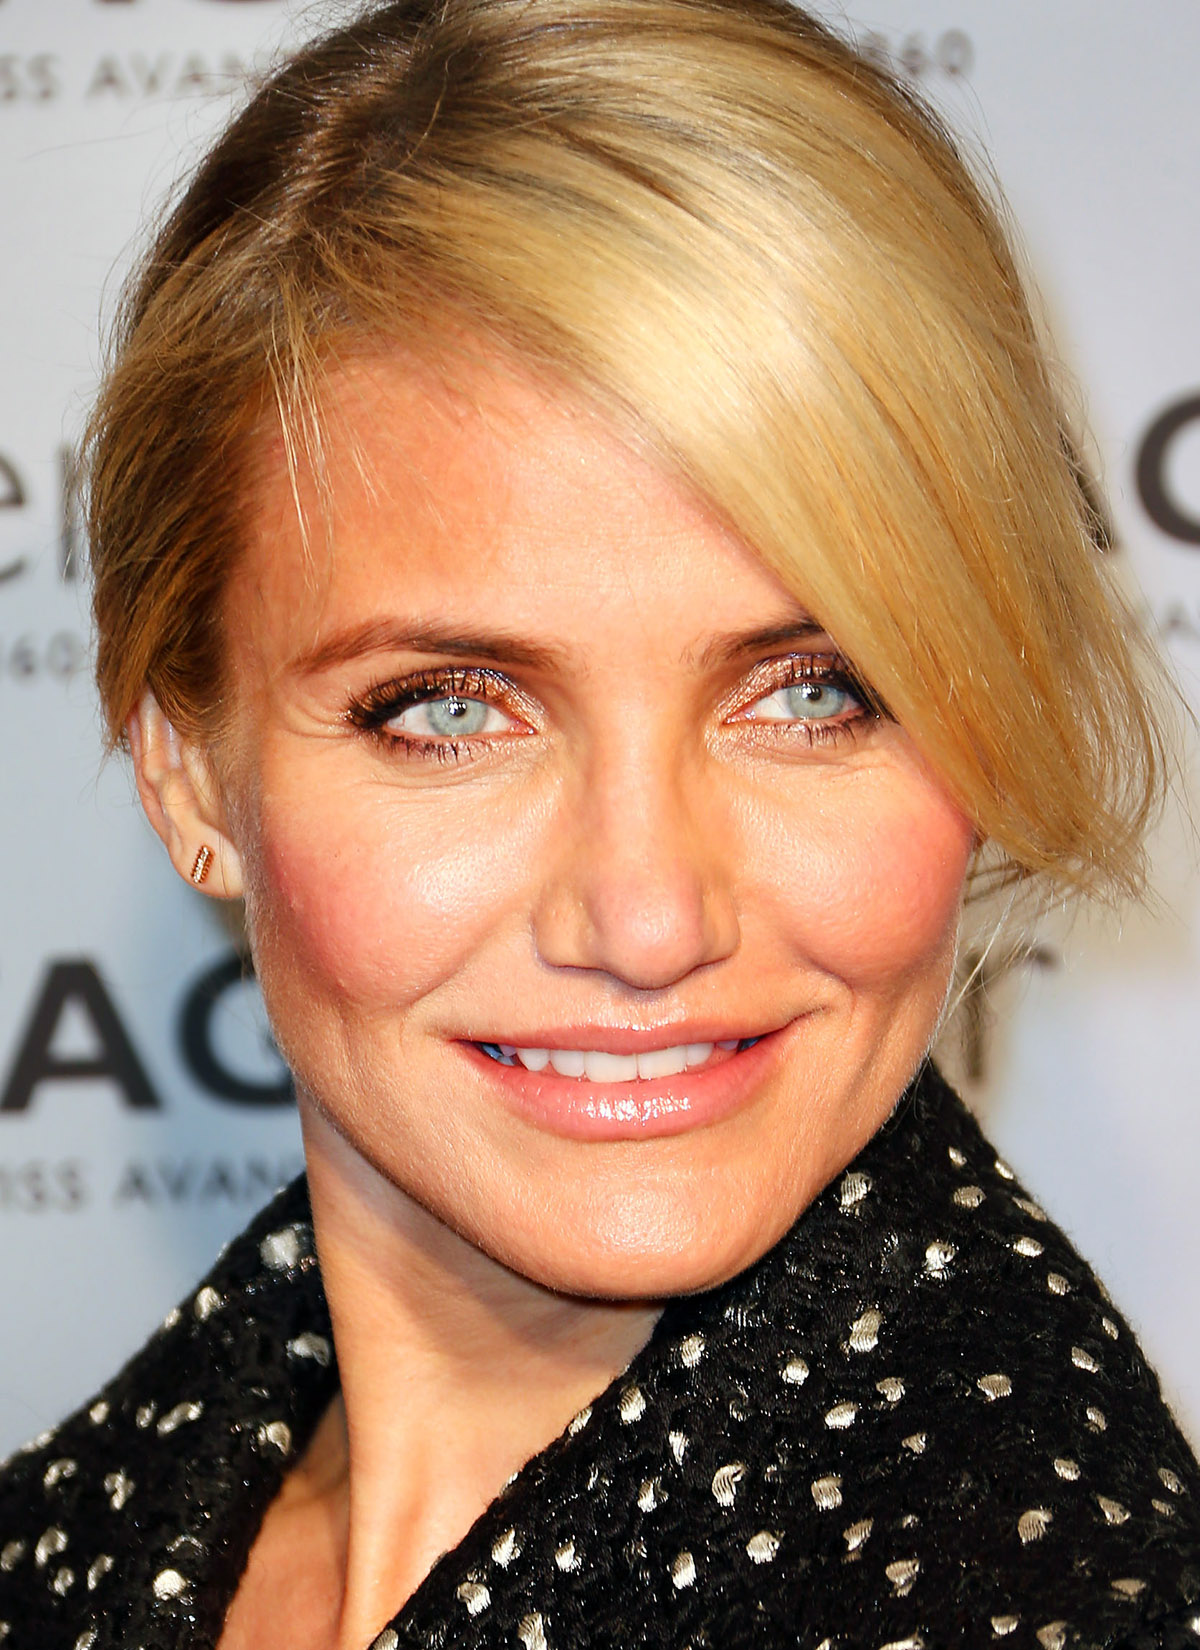 Frisuren 2015 Schulterlang Rundes Gesicht Cameron Diaz At The Tag Heuer Fifth Avenue Flagship Store